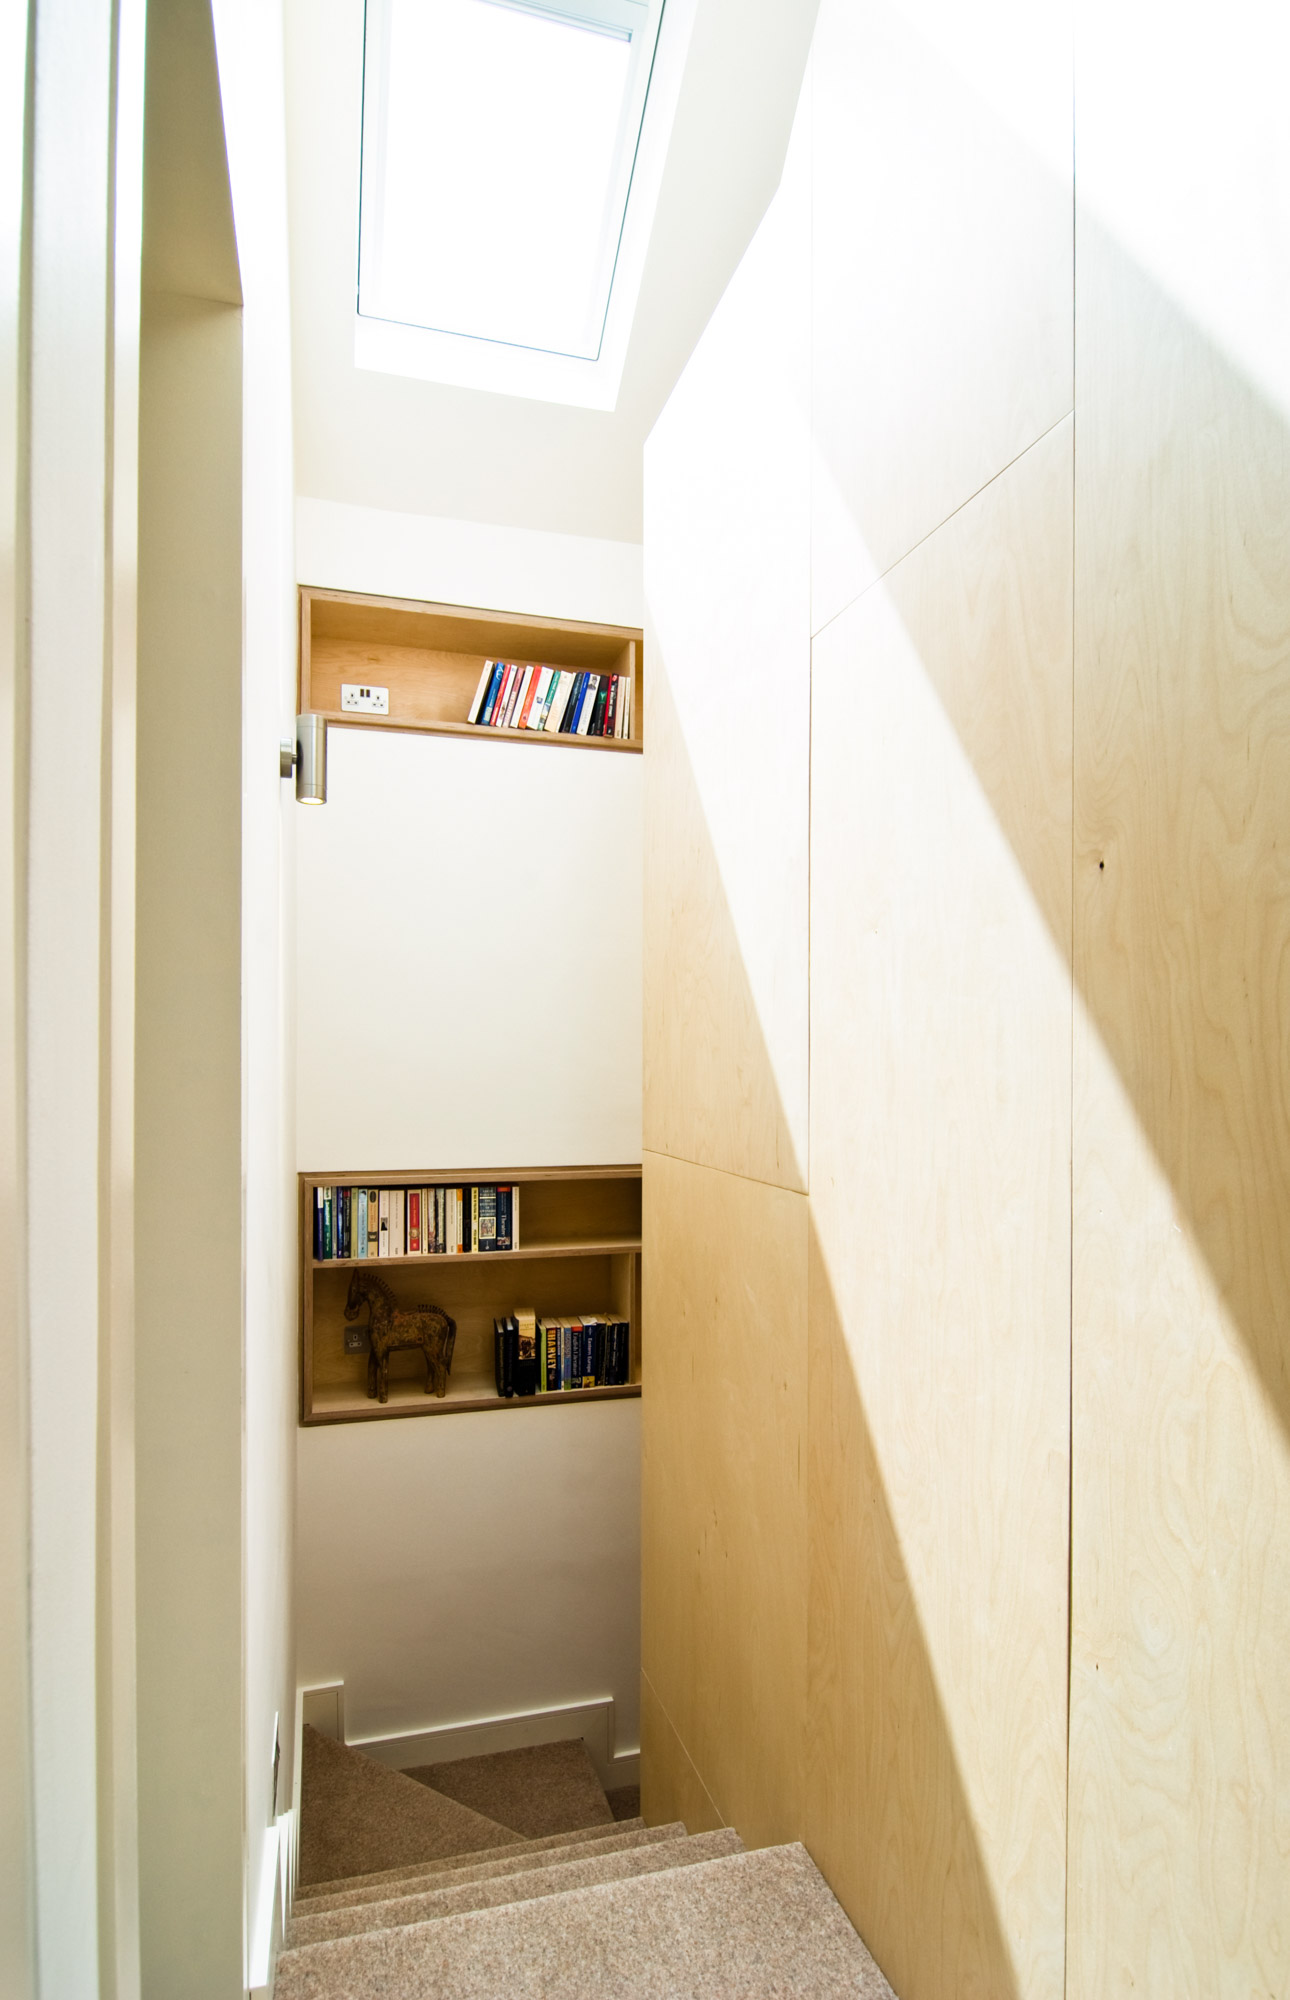 Close up of the plywood shelving by the staircase.